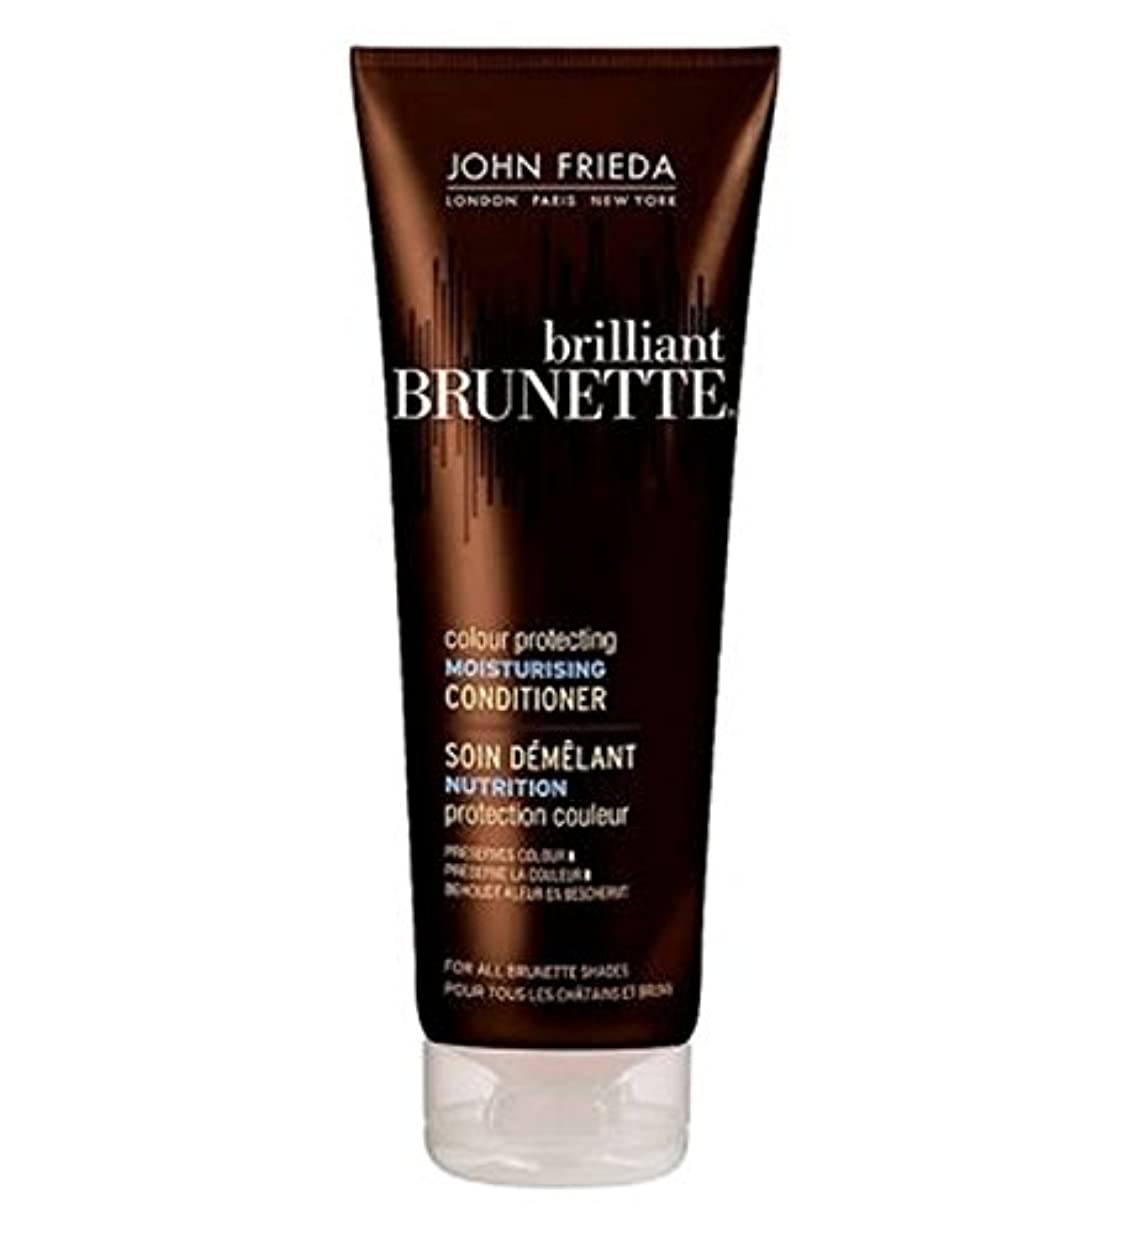 検索エンジン最適化財団勝者John Frieda Brilliant Brunette Colour Protecting Moisturising Conditioner for Brunettes 250ml - 250ミリリットルブルネット...